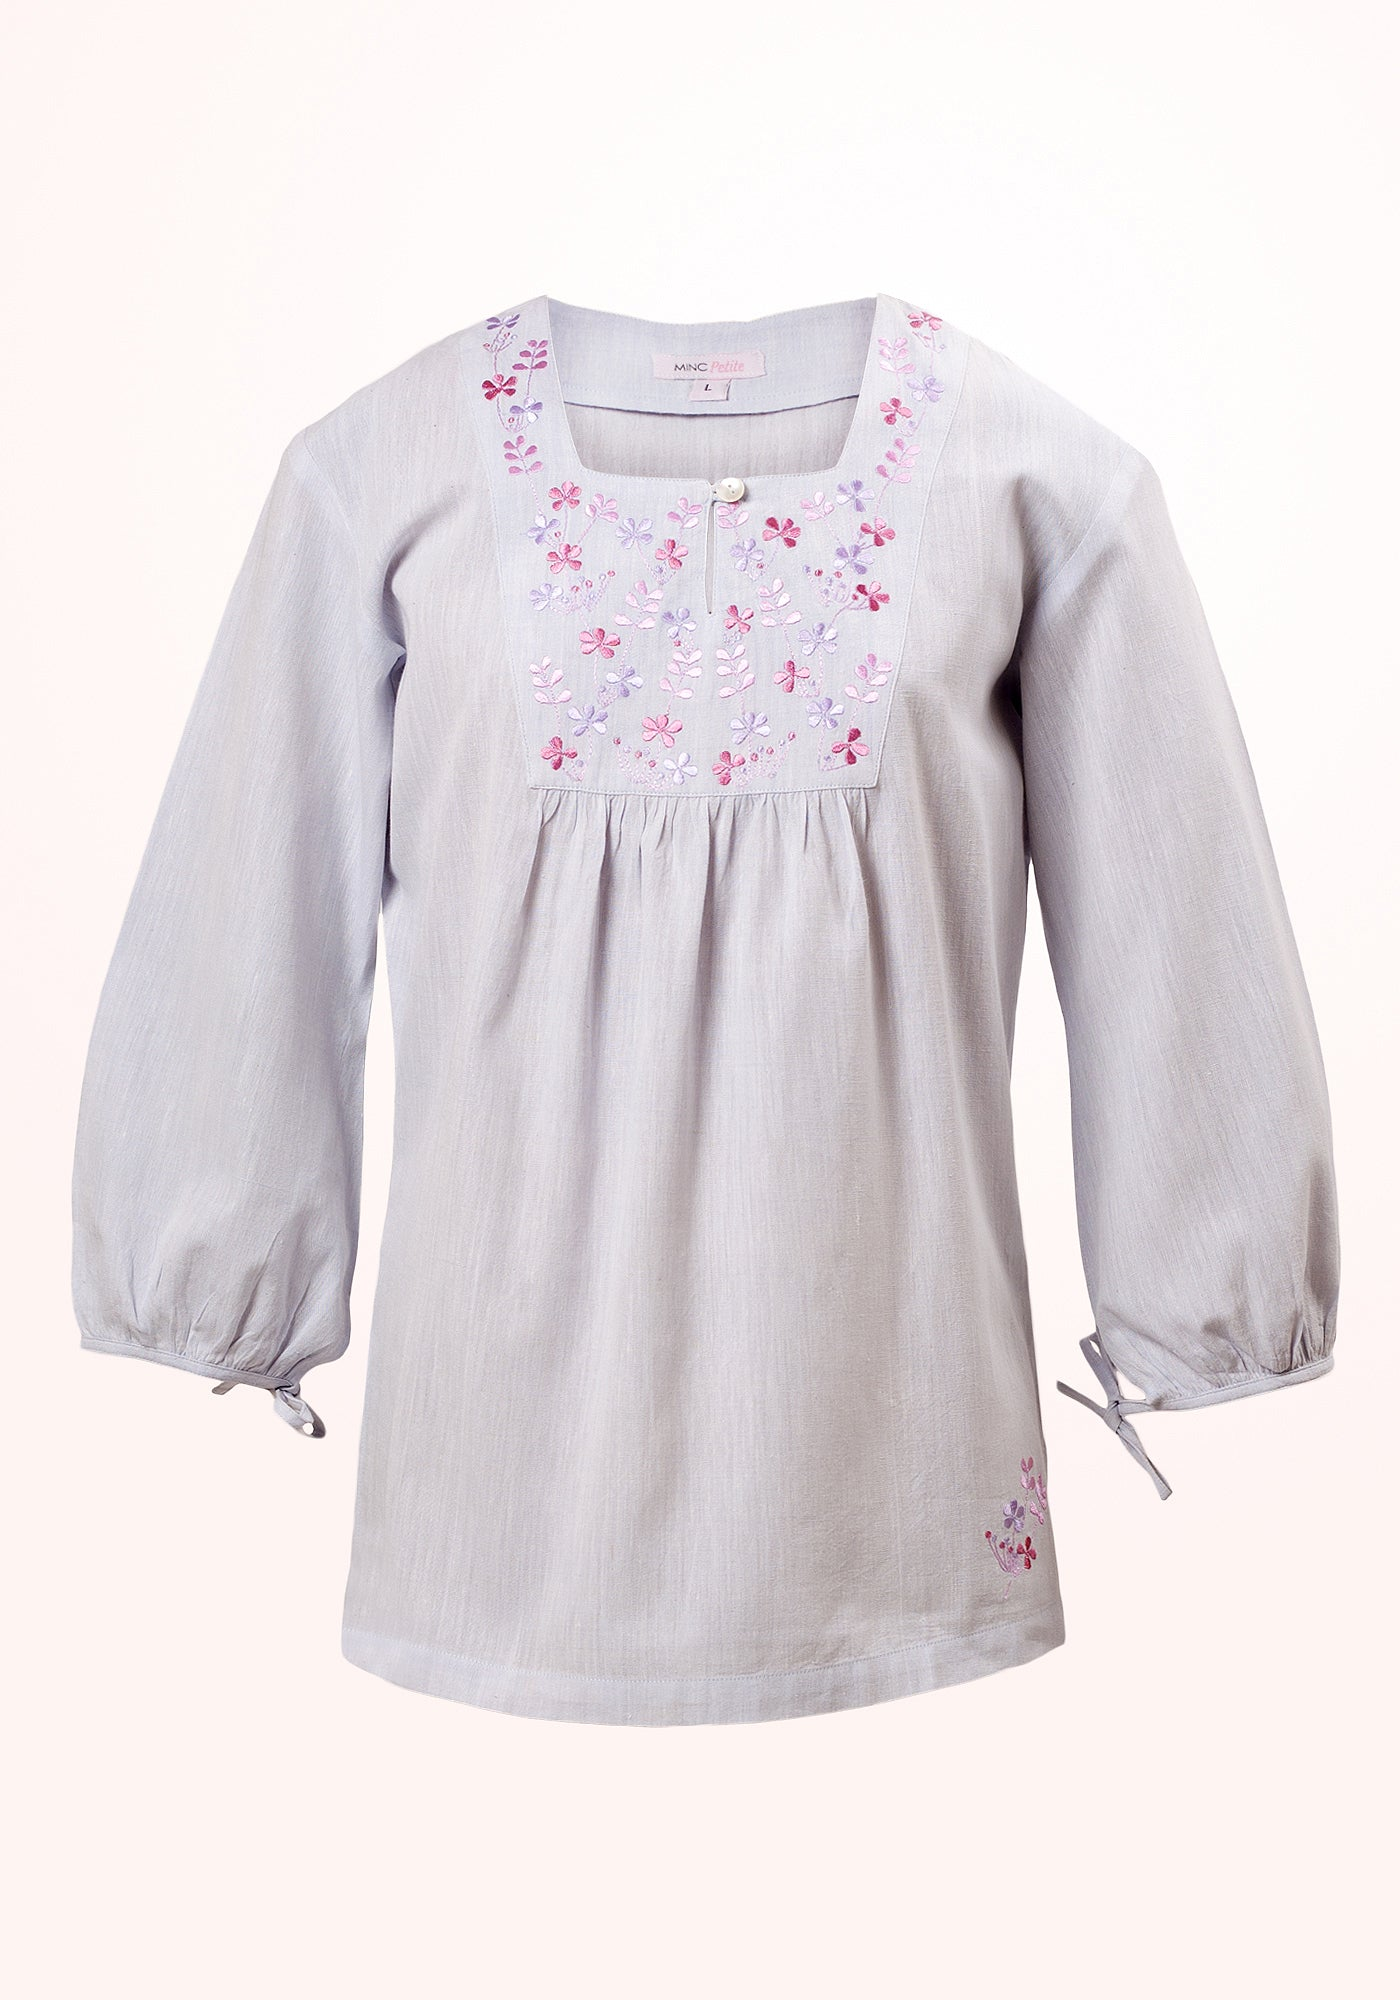 Periwinkle Girls Top in Blue Cotton Khadi - MINC ecofashion